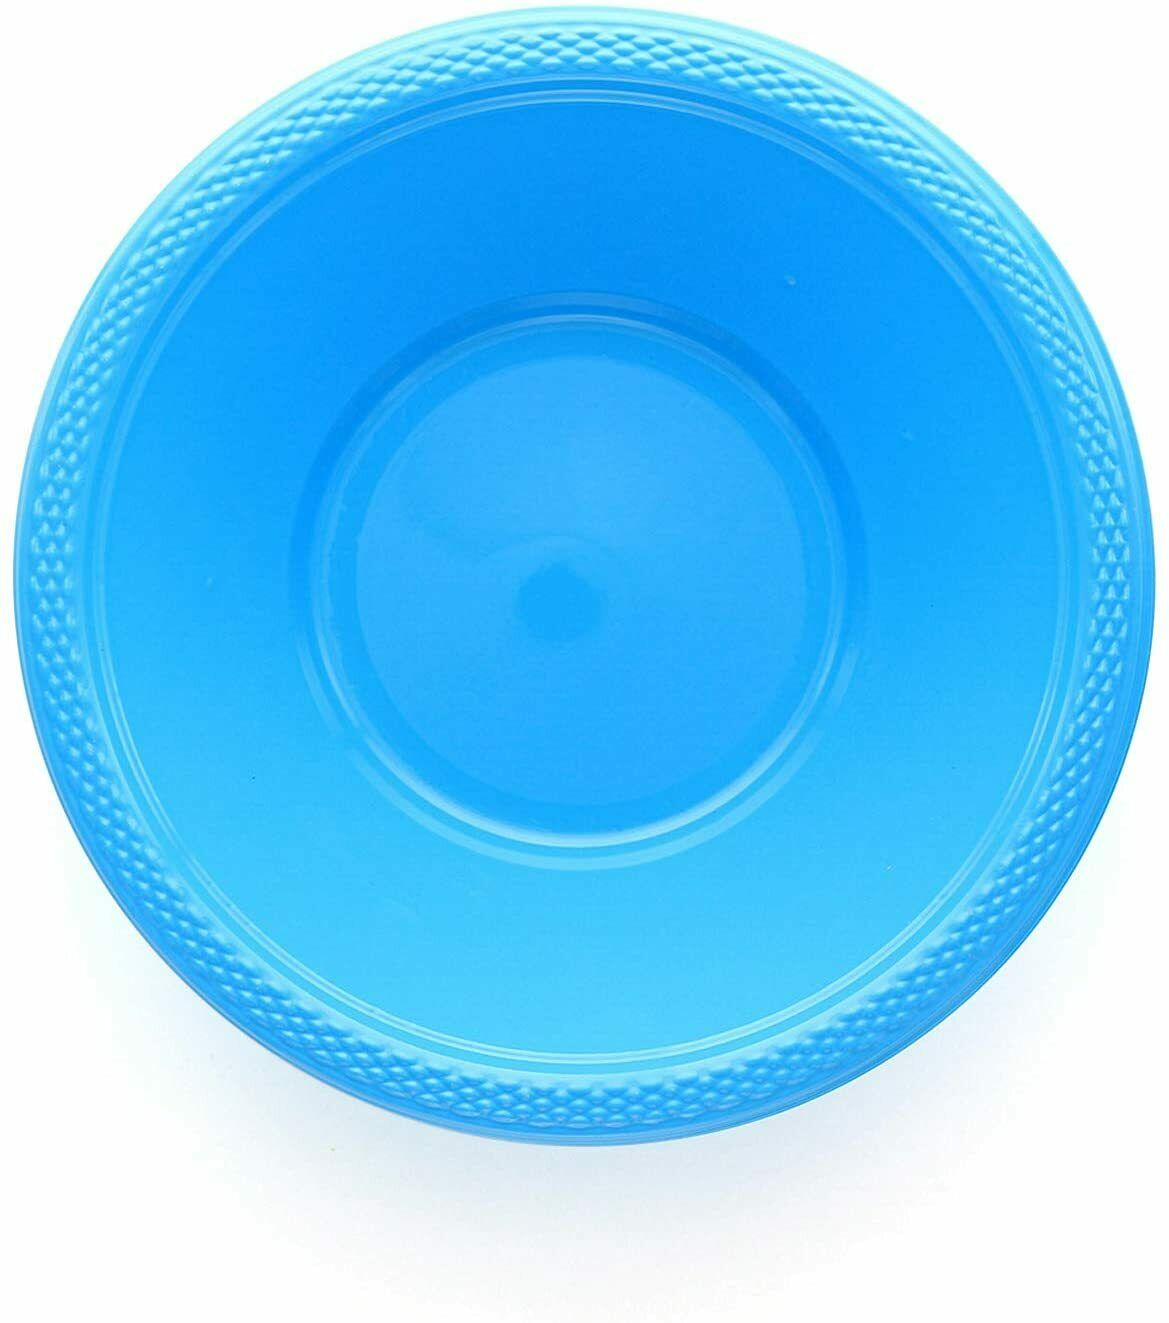 SparkSettings Reusable Plastic Bowls Washable BPA Free Cereal Bowl - $8.99